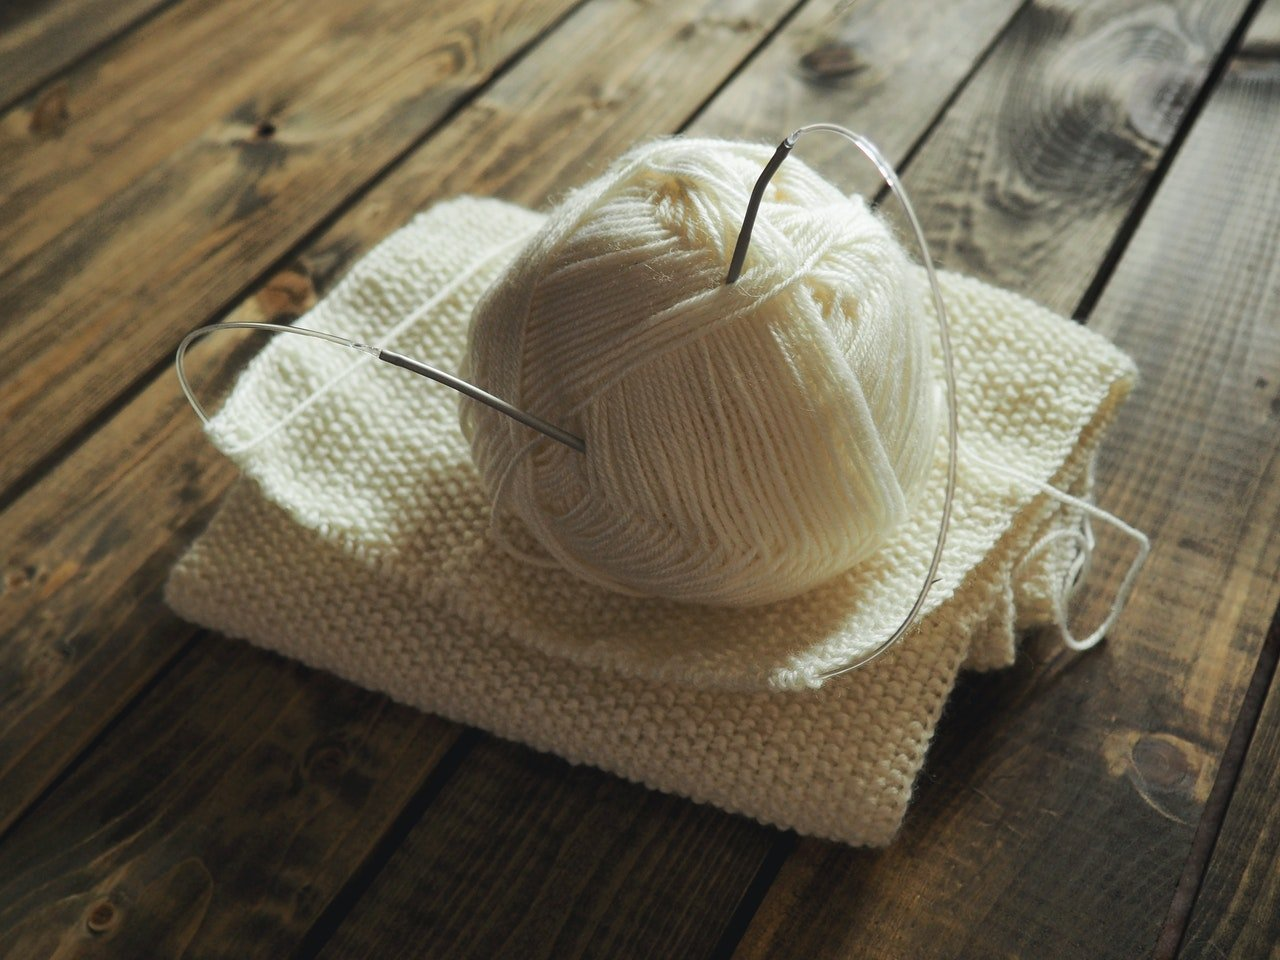 Photo of knit wool ball and needle | Photo: Pexels